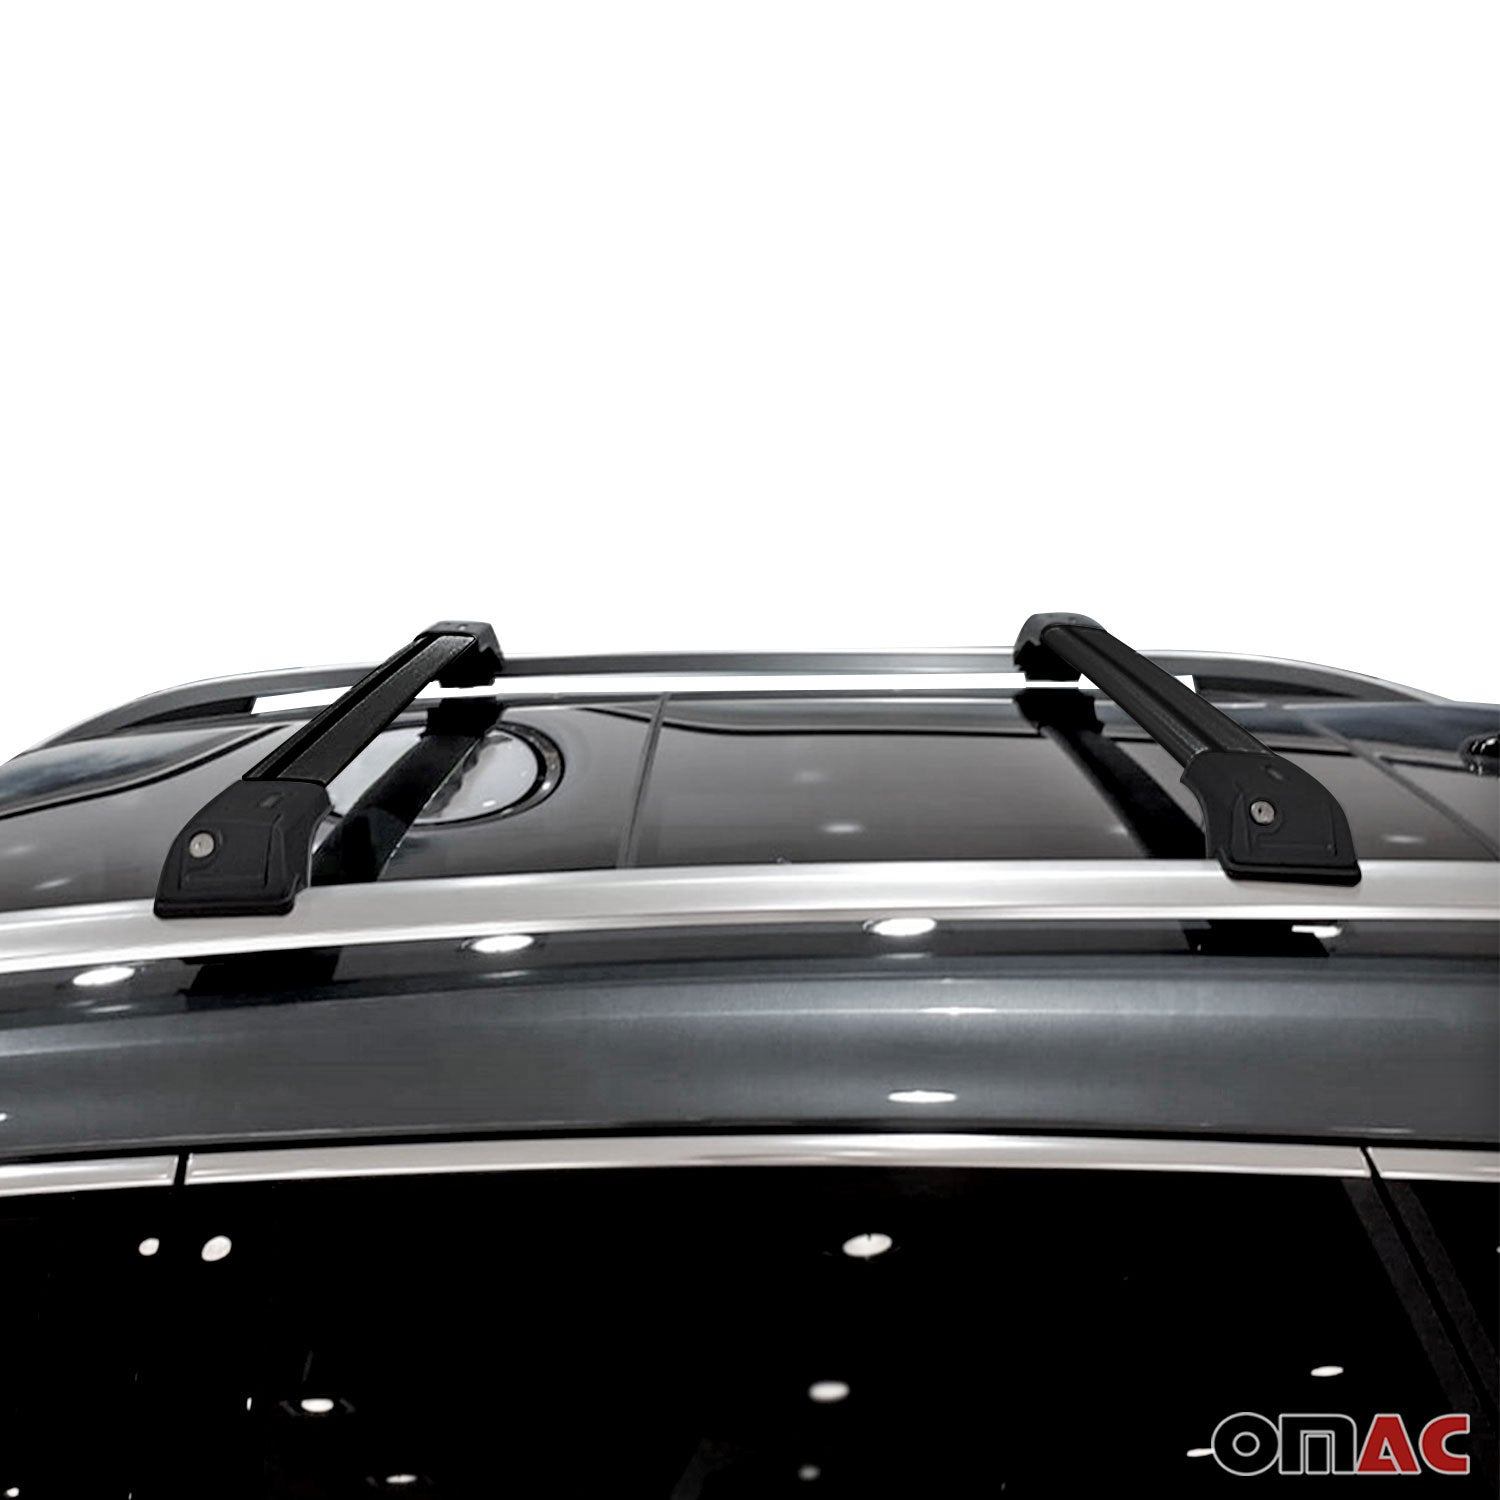 Roof Rack Cross Bars Luggage Carrier Black for Nissan Murano 2003-2008